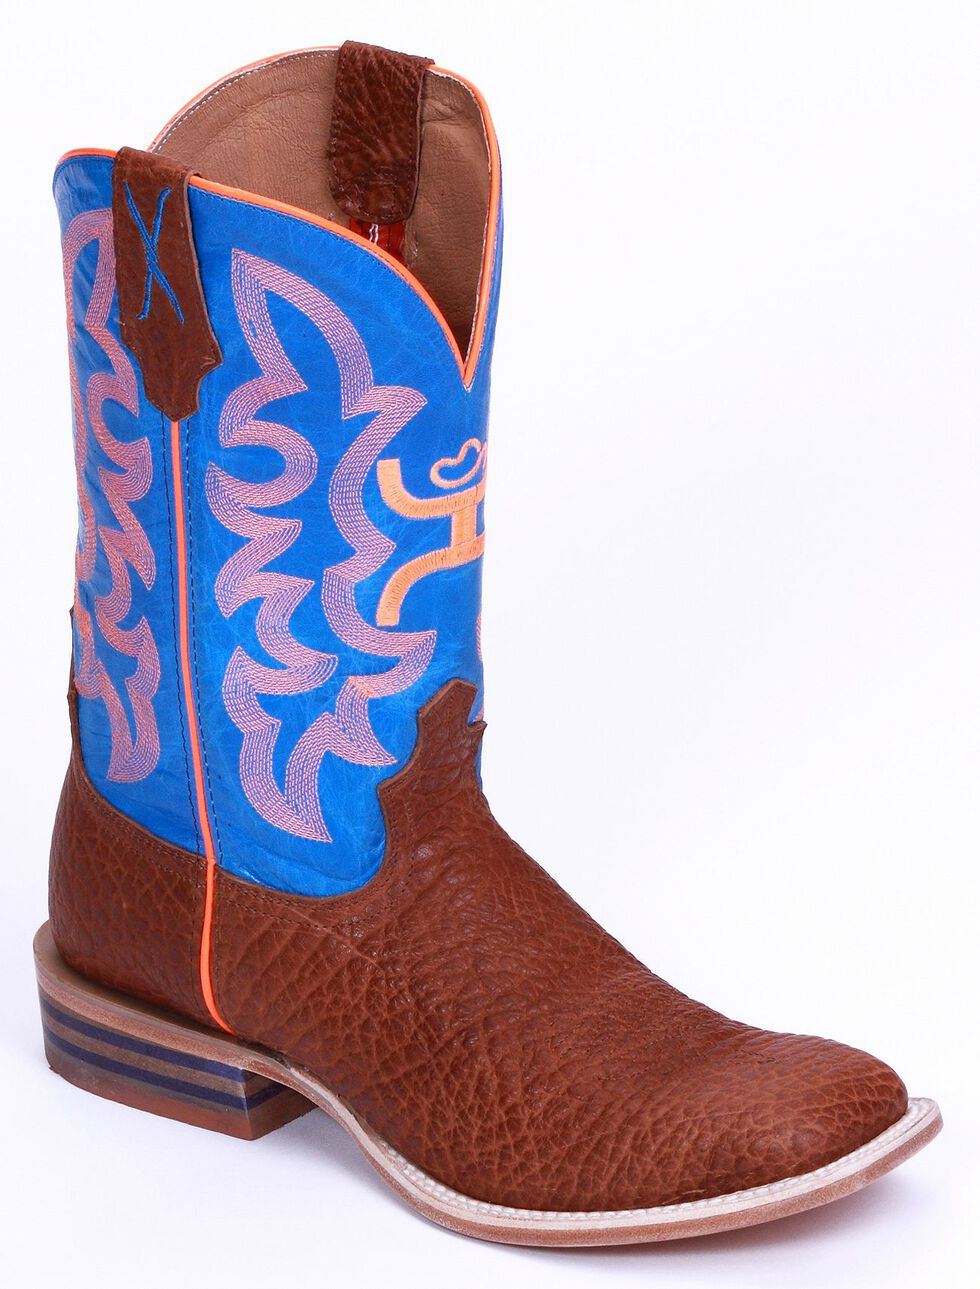 Twisted X Youth Boys' Neon Cowboy Boots - Wide Square Toe, Cognac, hi-res